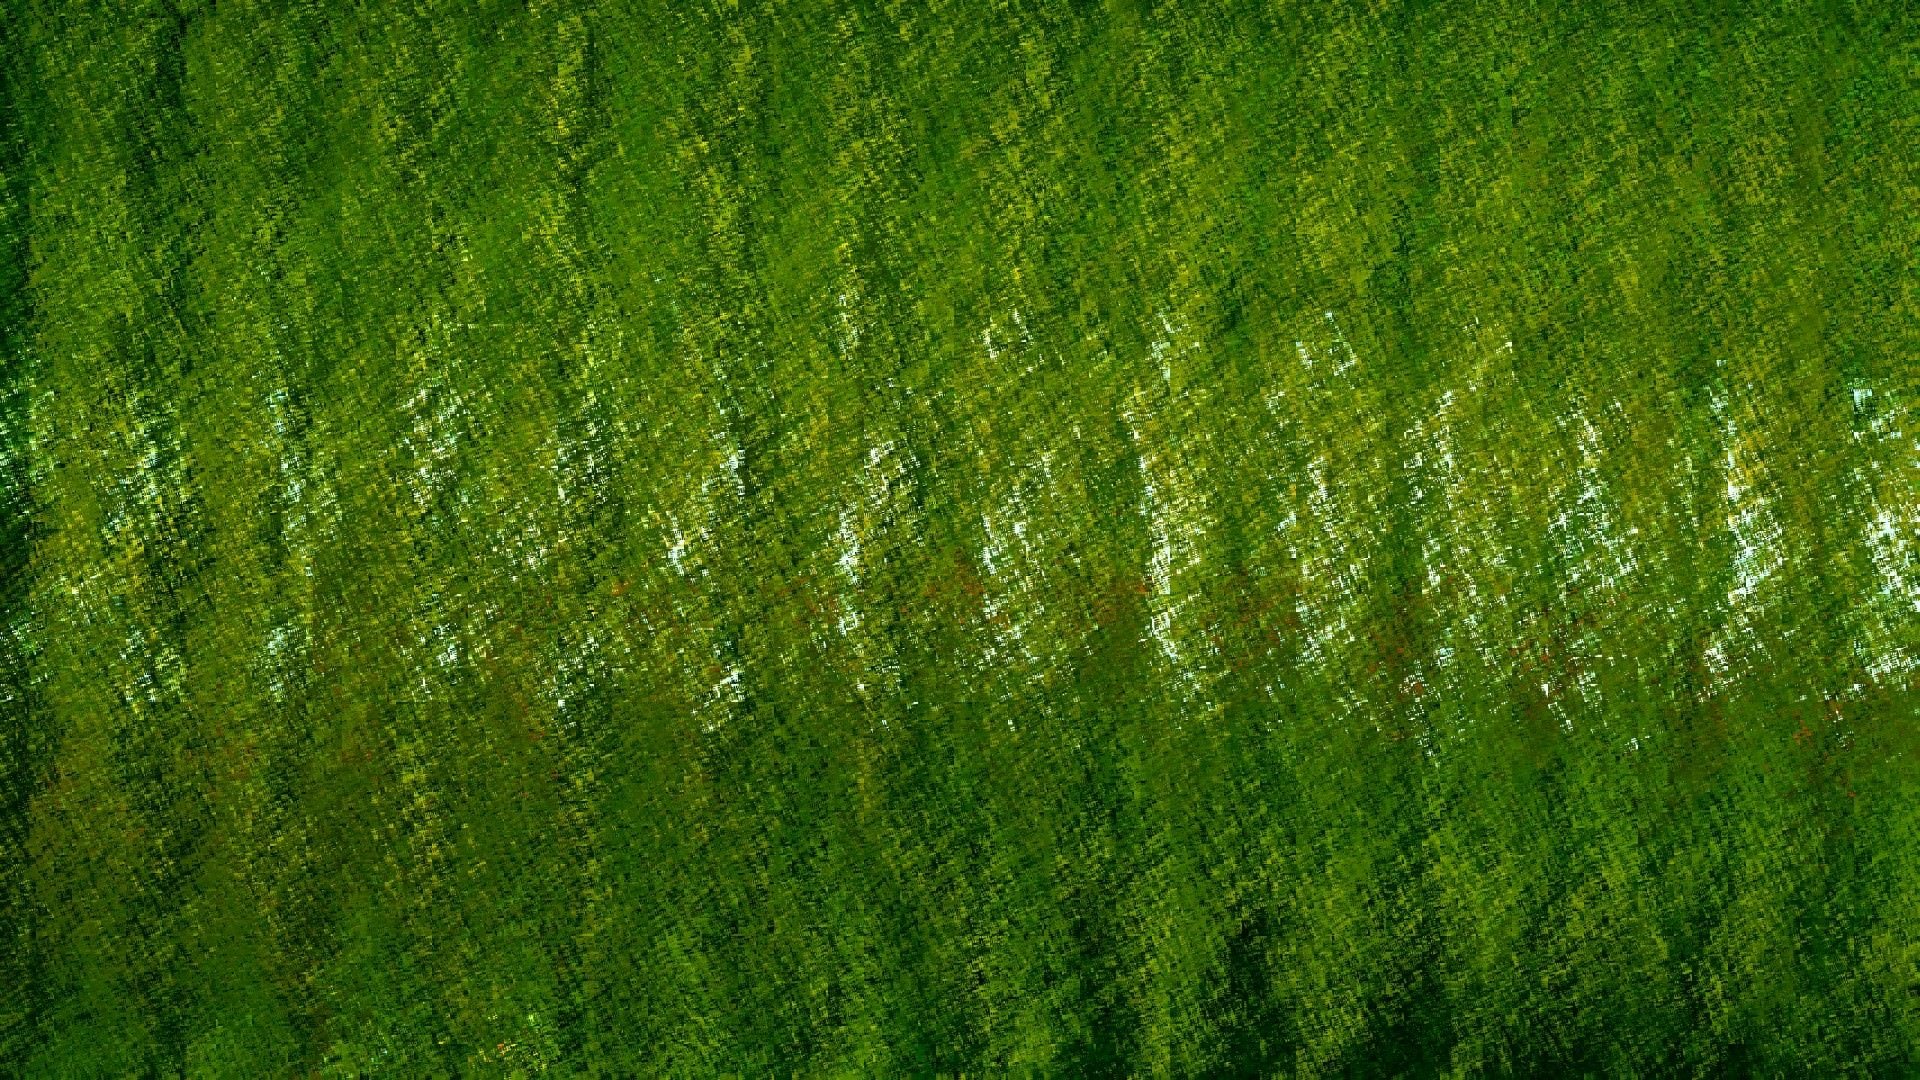 Green Textured Background For You